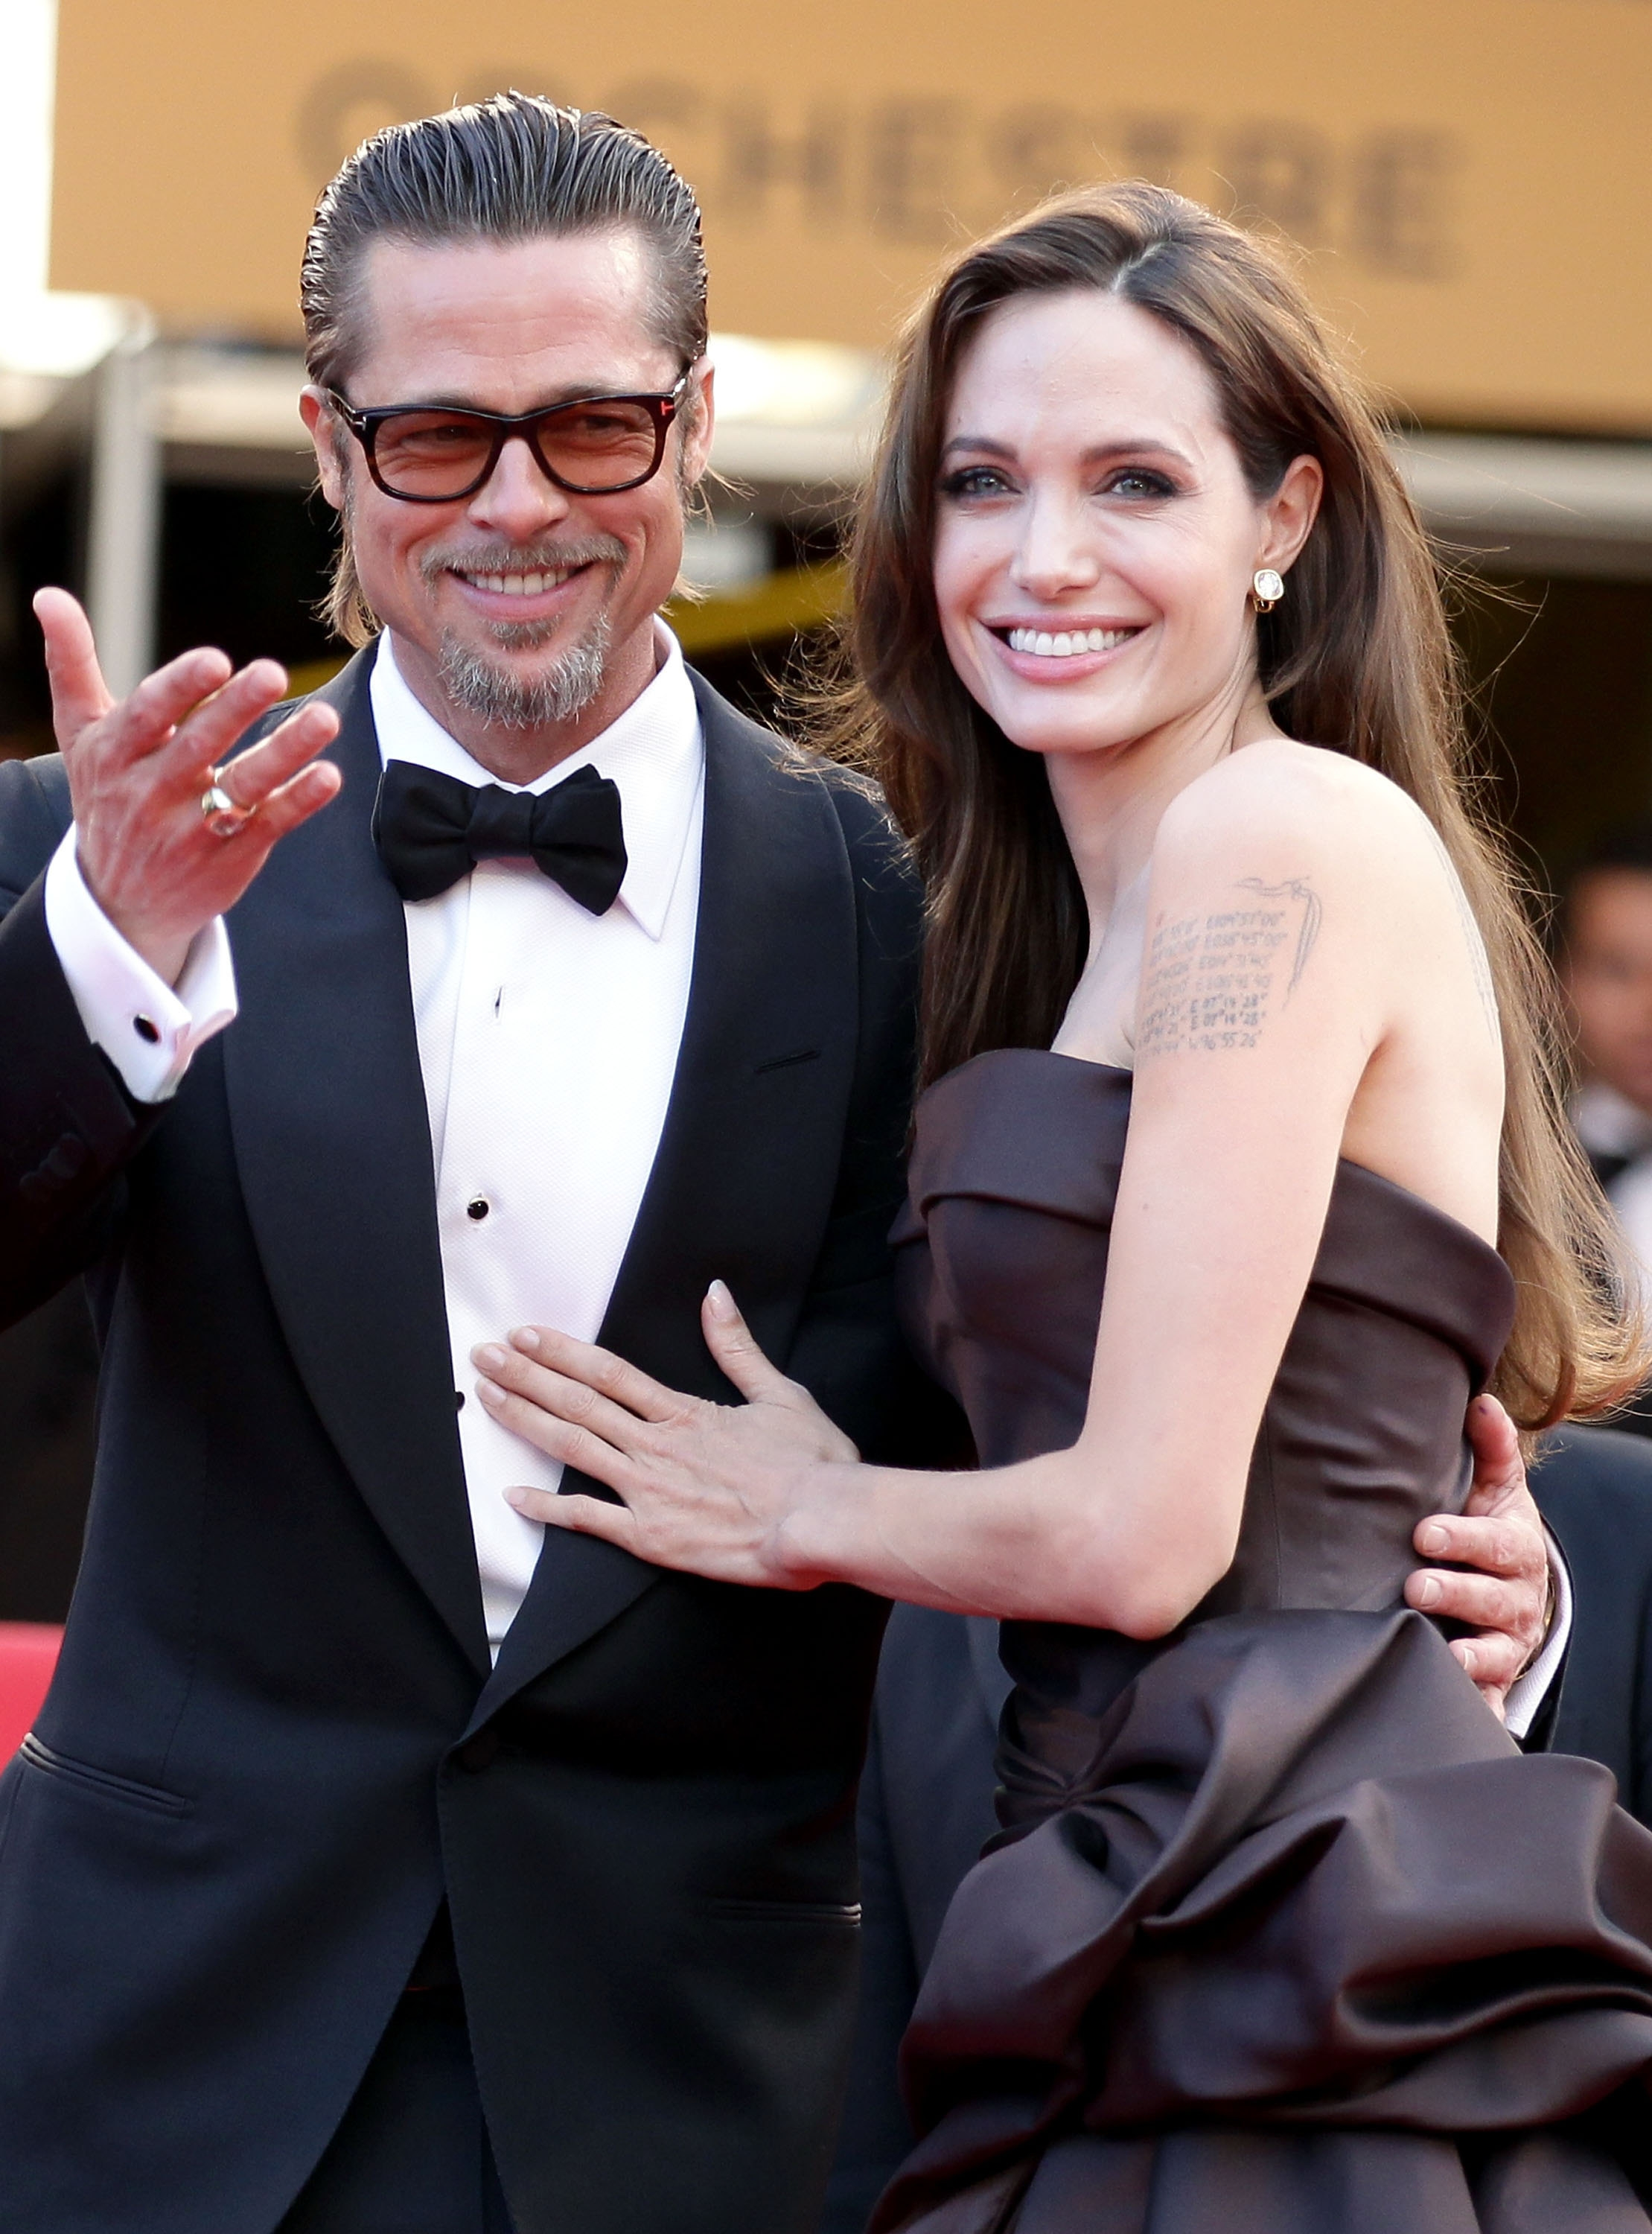 Angelina Jolie and Brad Pitt, shown in a file photo, were married Saturday at their home in Provence, France.